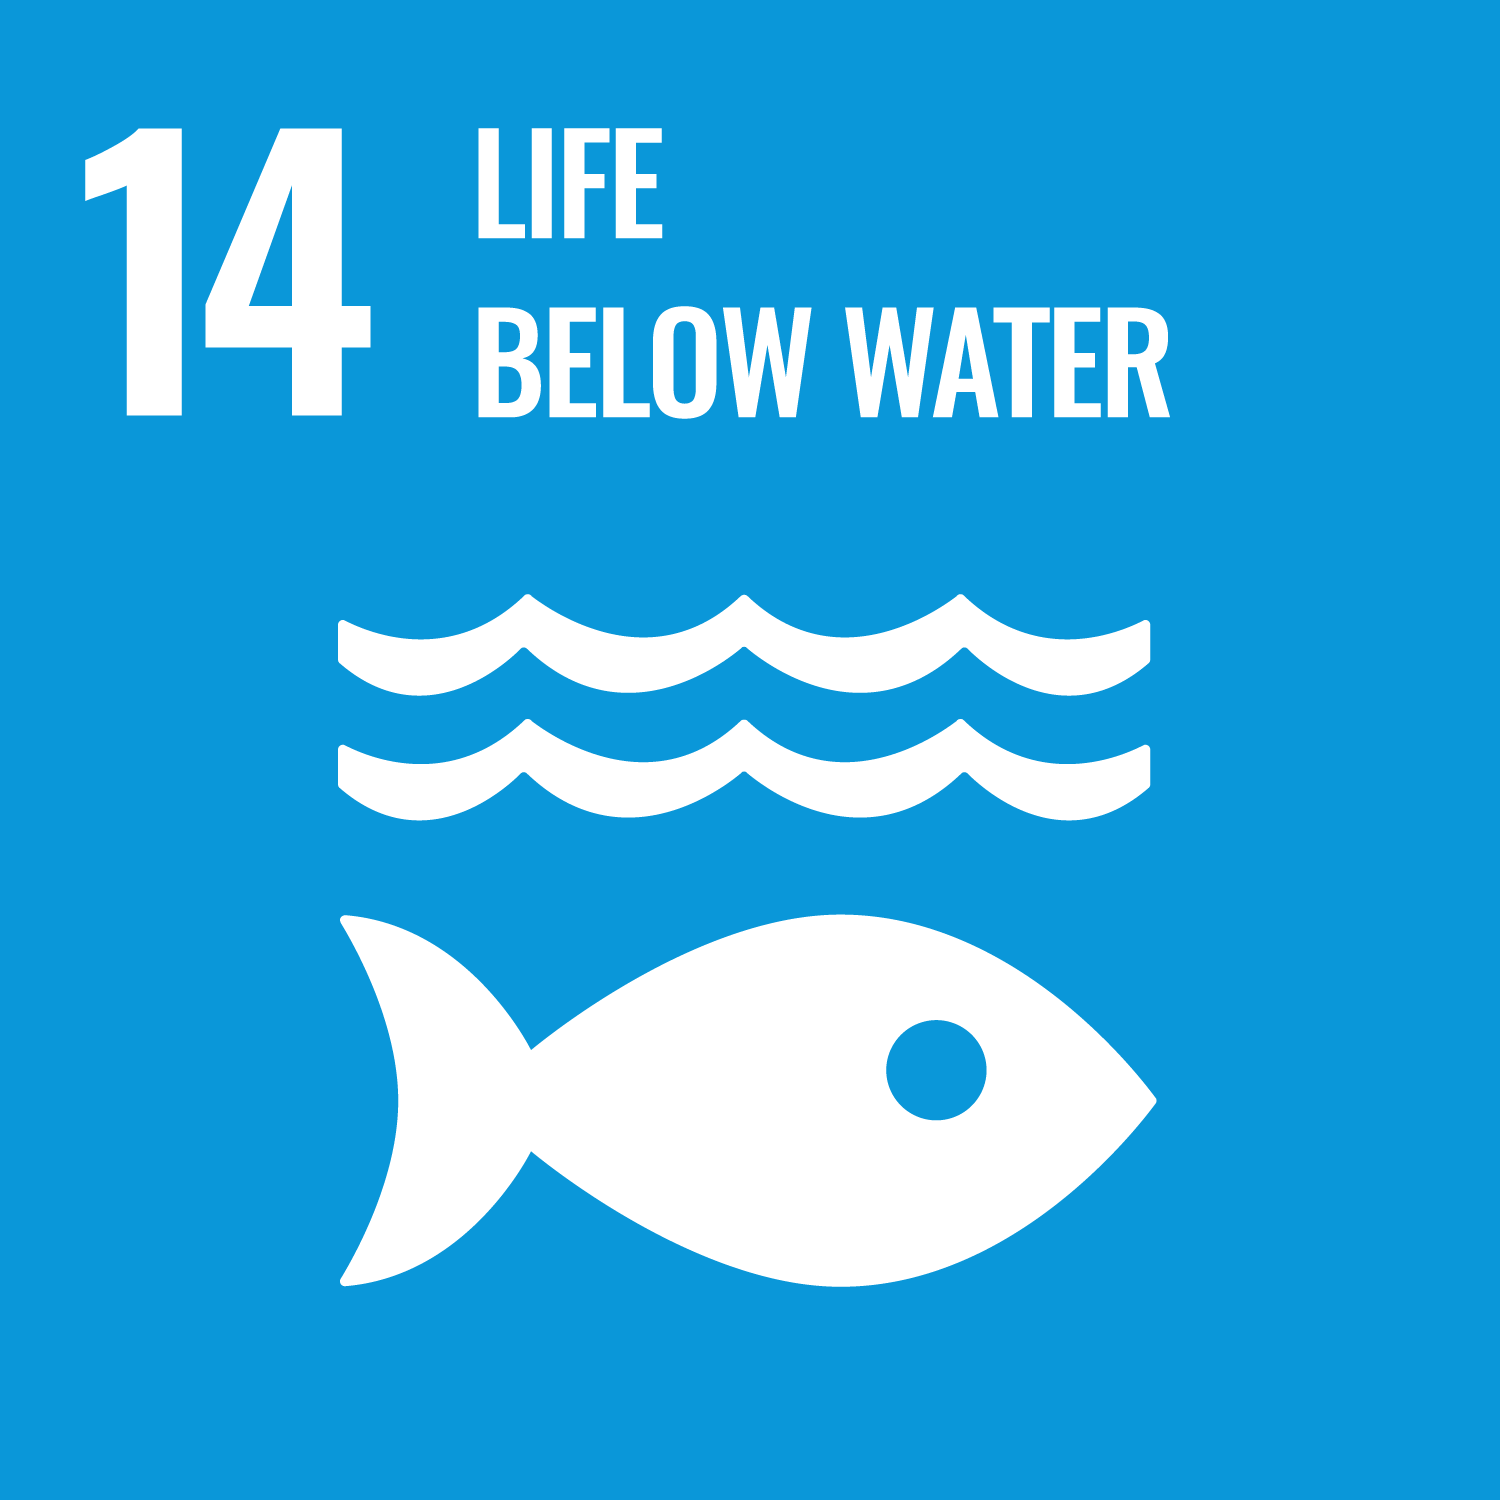 UN Sustainable goal - Life below water